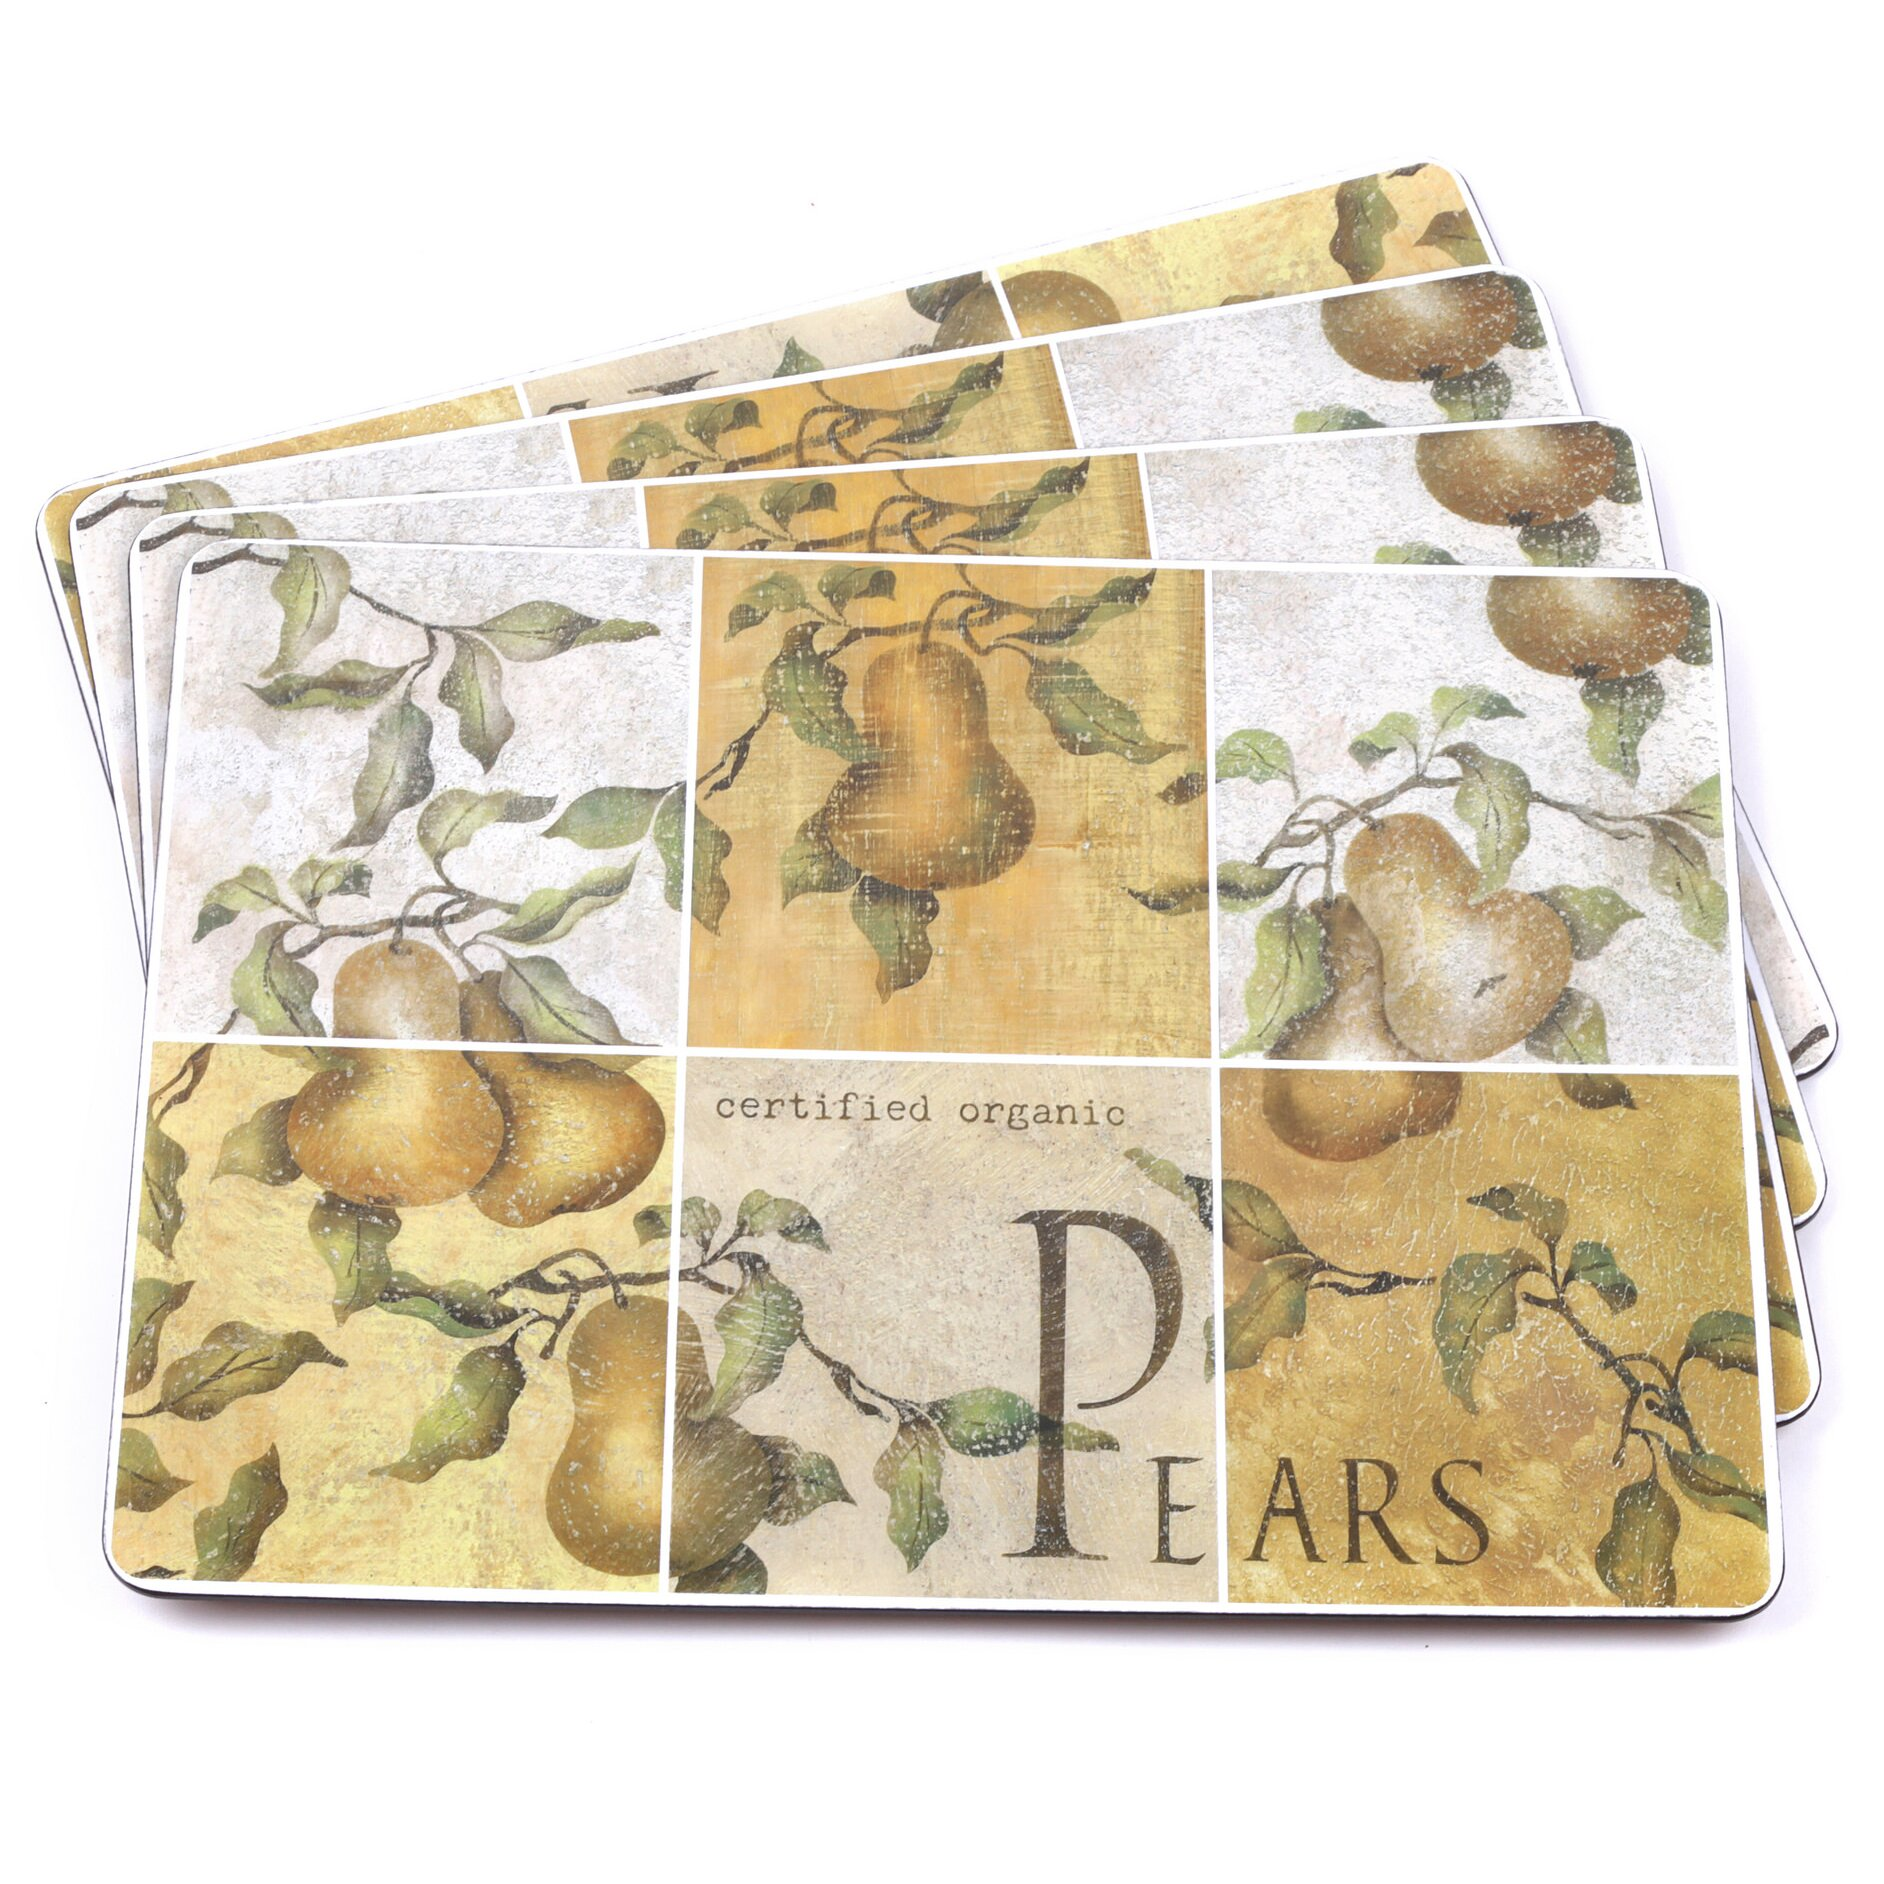 Sweet Home Collection Pears Hardboard Cork Backed Placemat